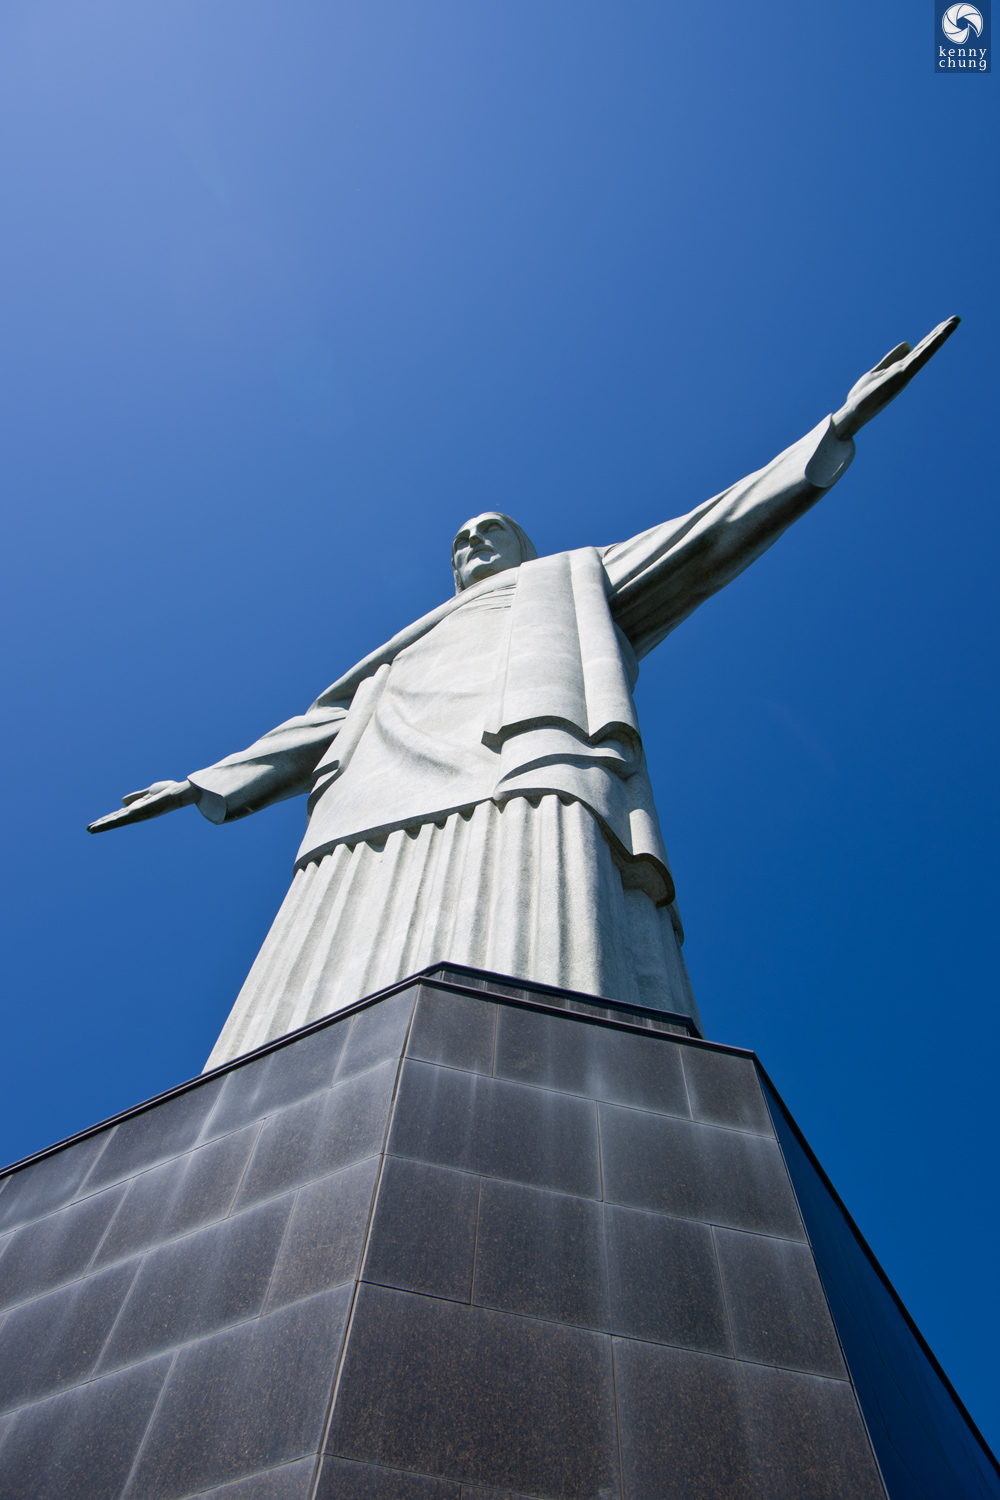 Base of the Cristo Redentor statue.